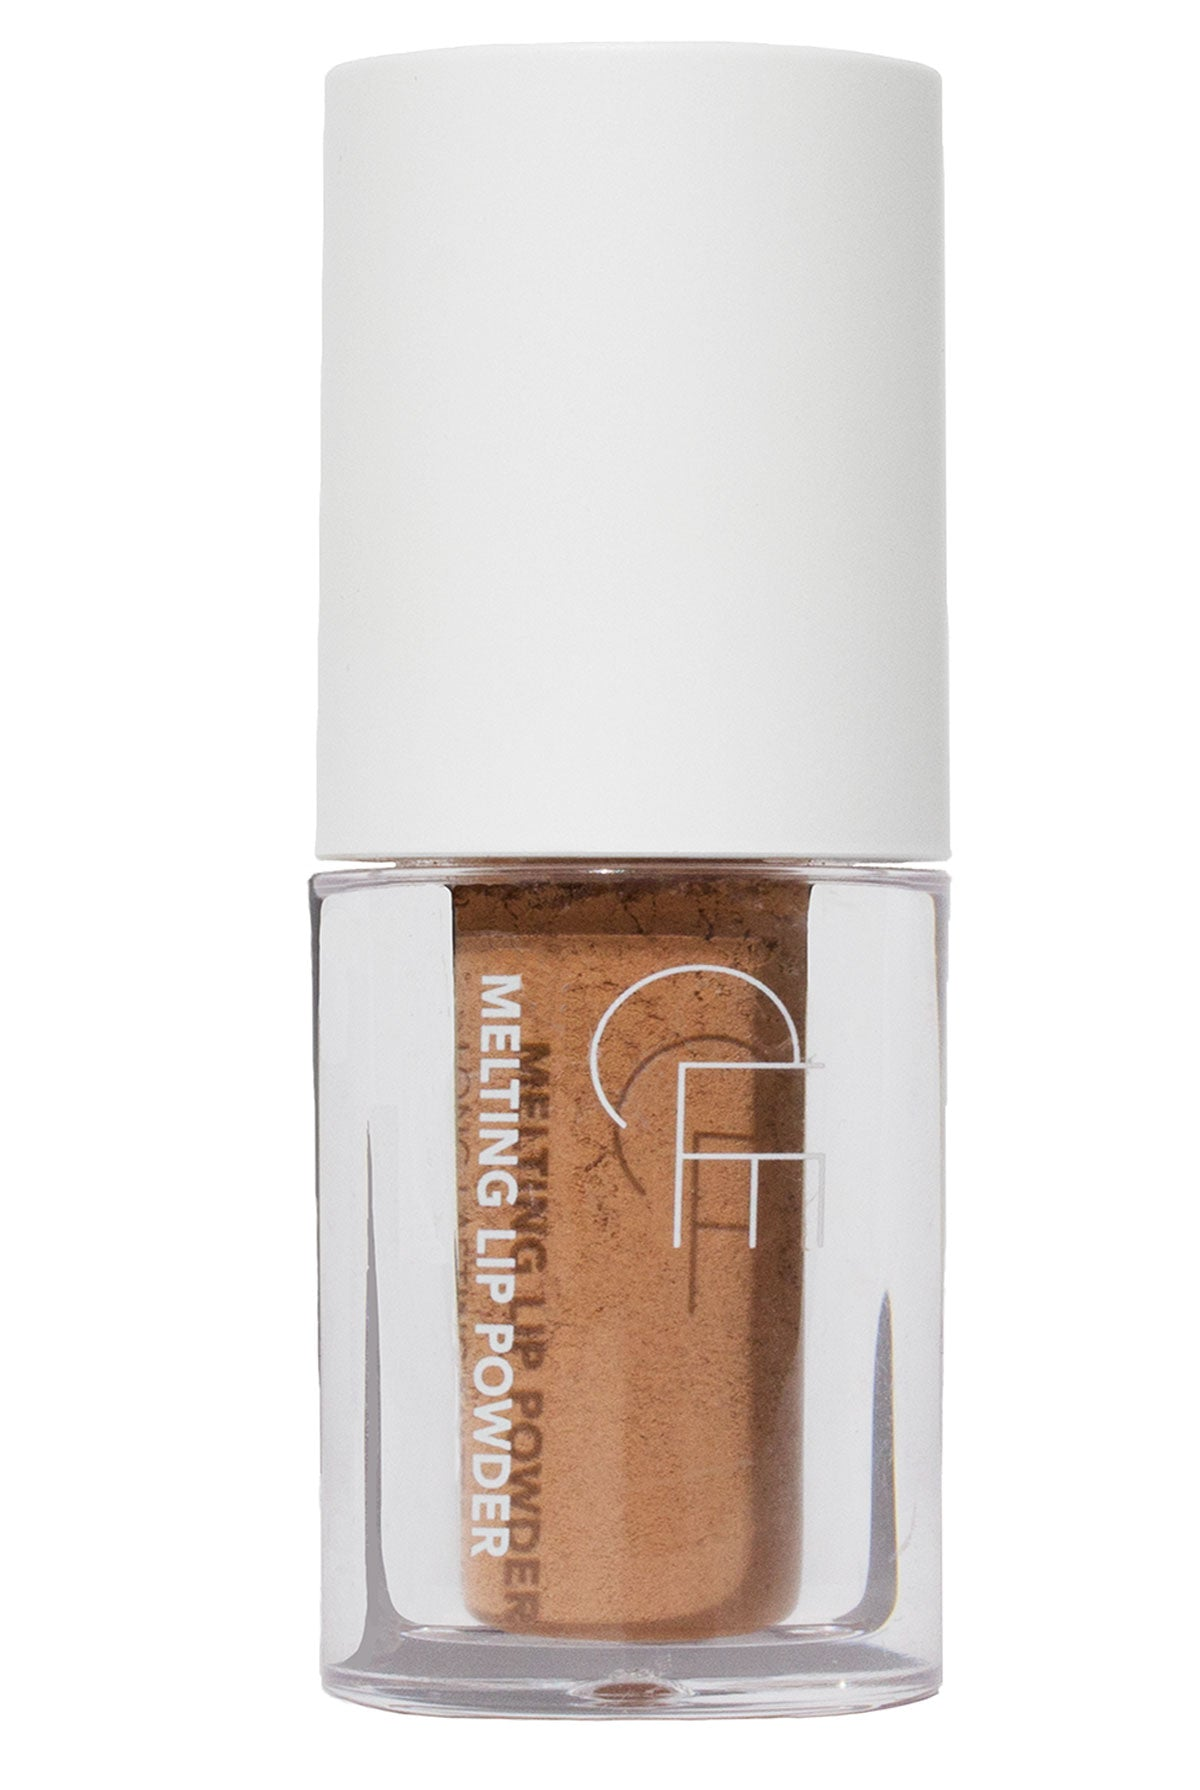 Cle Cosmetics Melting Lip Colour Mocha Creme In Brown